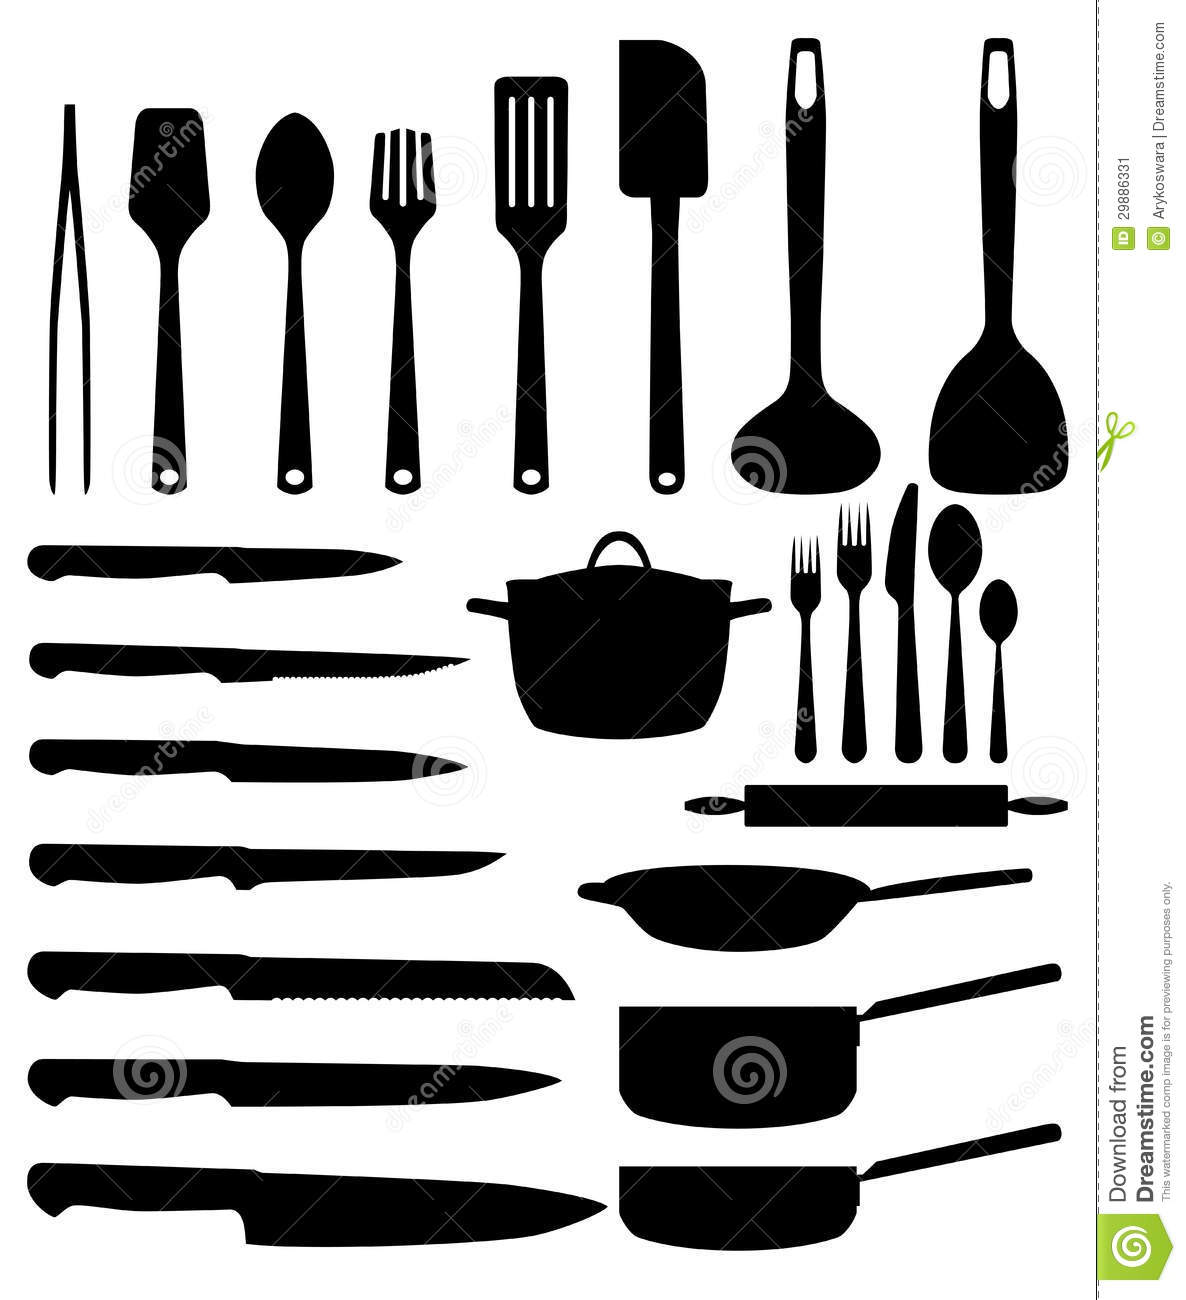 Ustensile de cuisine image stock image 29886331 for Achat d ustensile de cuisine